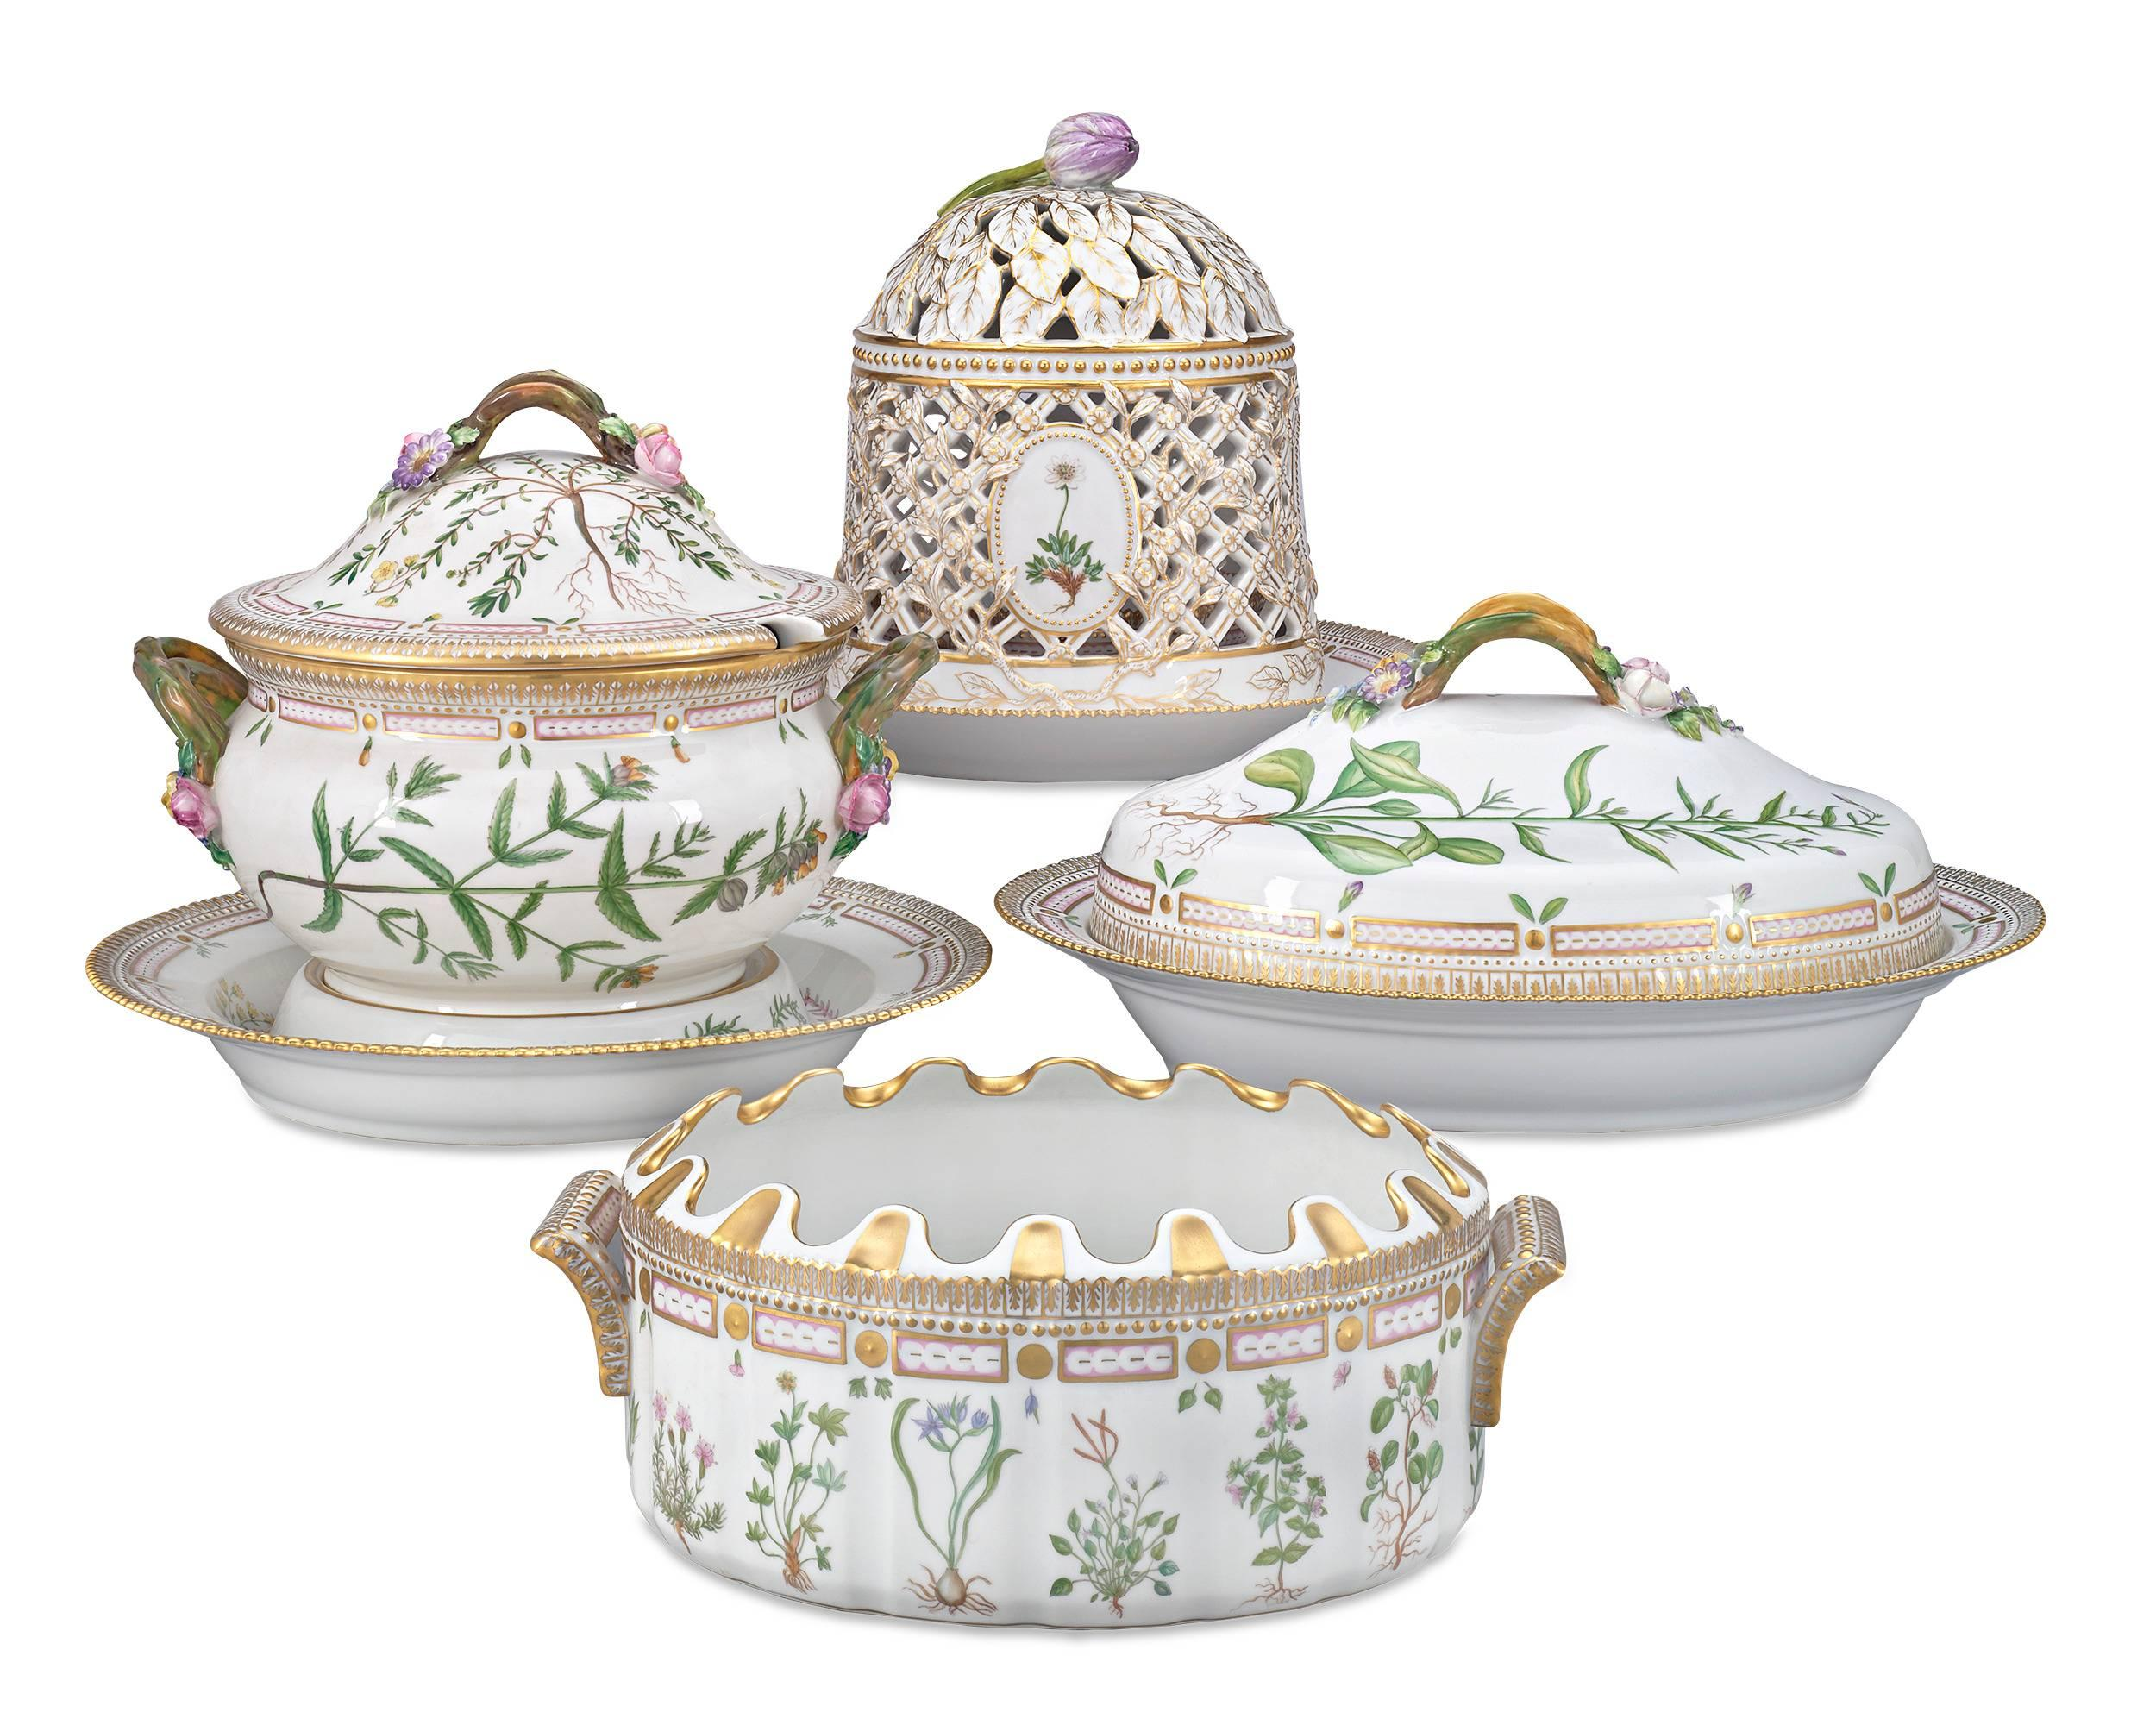 Synonymous with royalty since its inception the Royal Copenhagen Porcelain Manufactoryu0027s resplendent Flora Danica porcelain  sc 1 st  1stDibs & 143 Piece Flora Danica Porcelain Dinner Service by Royal Copenhag ...